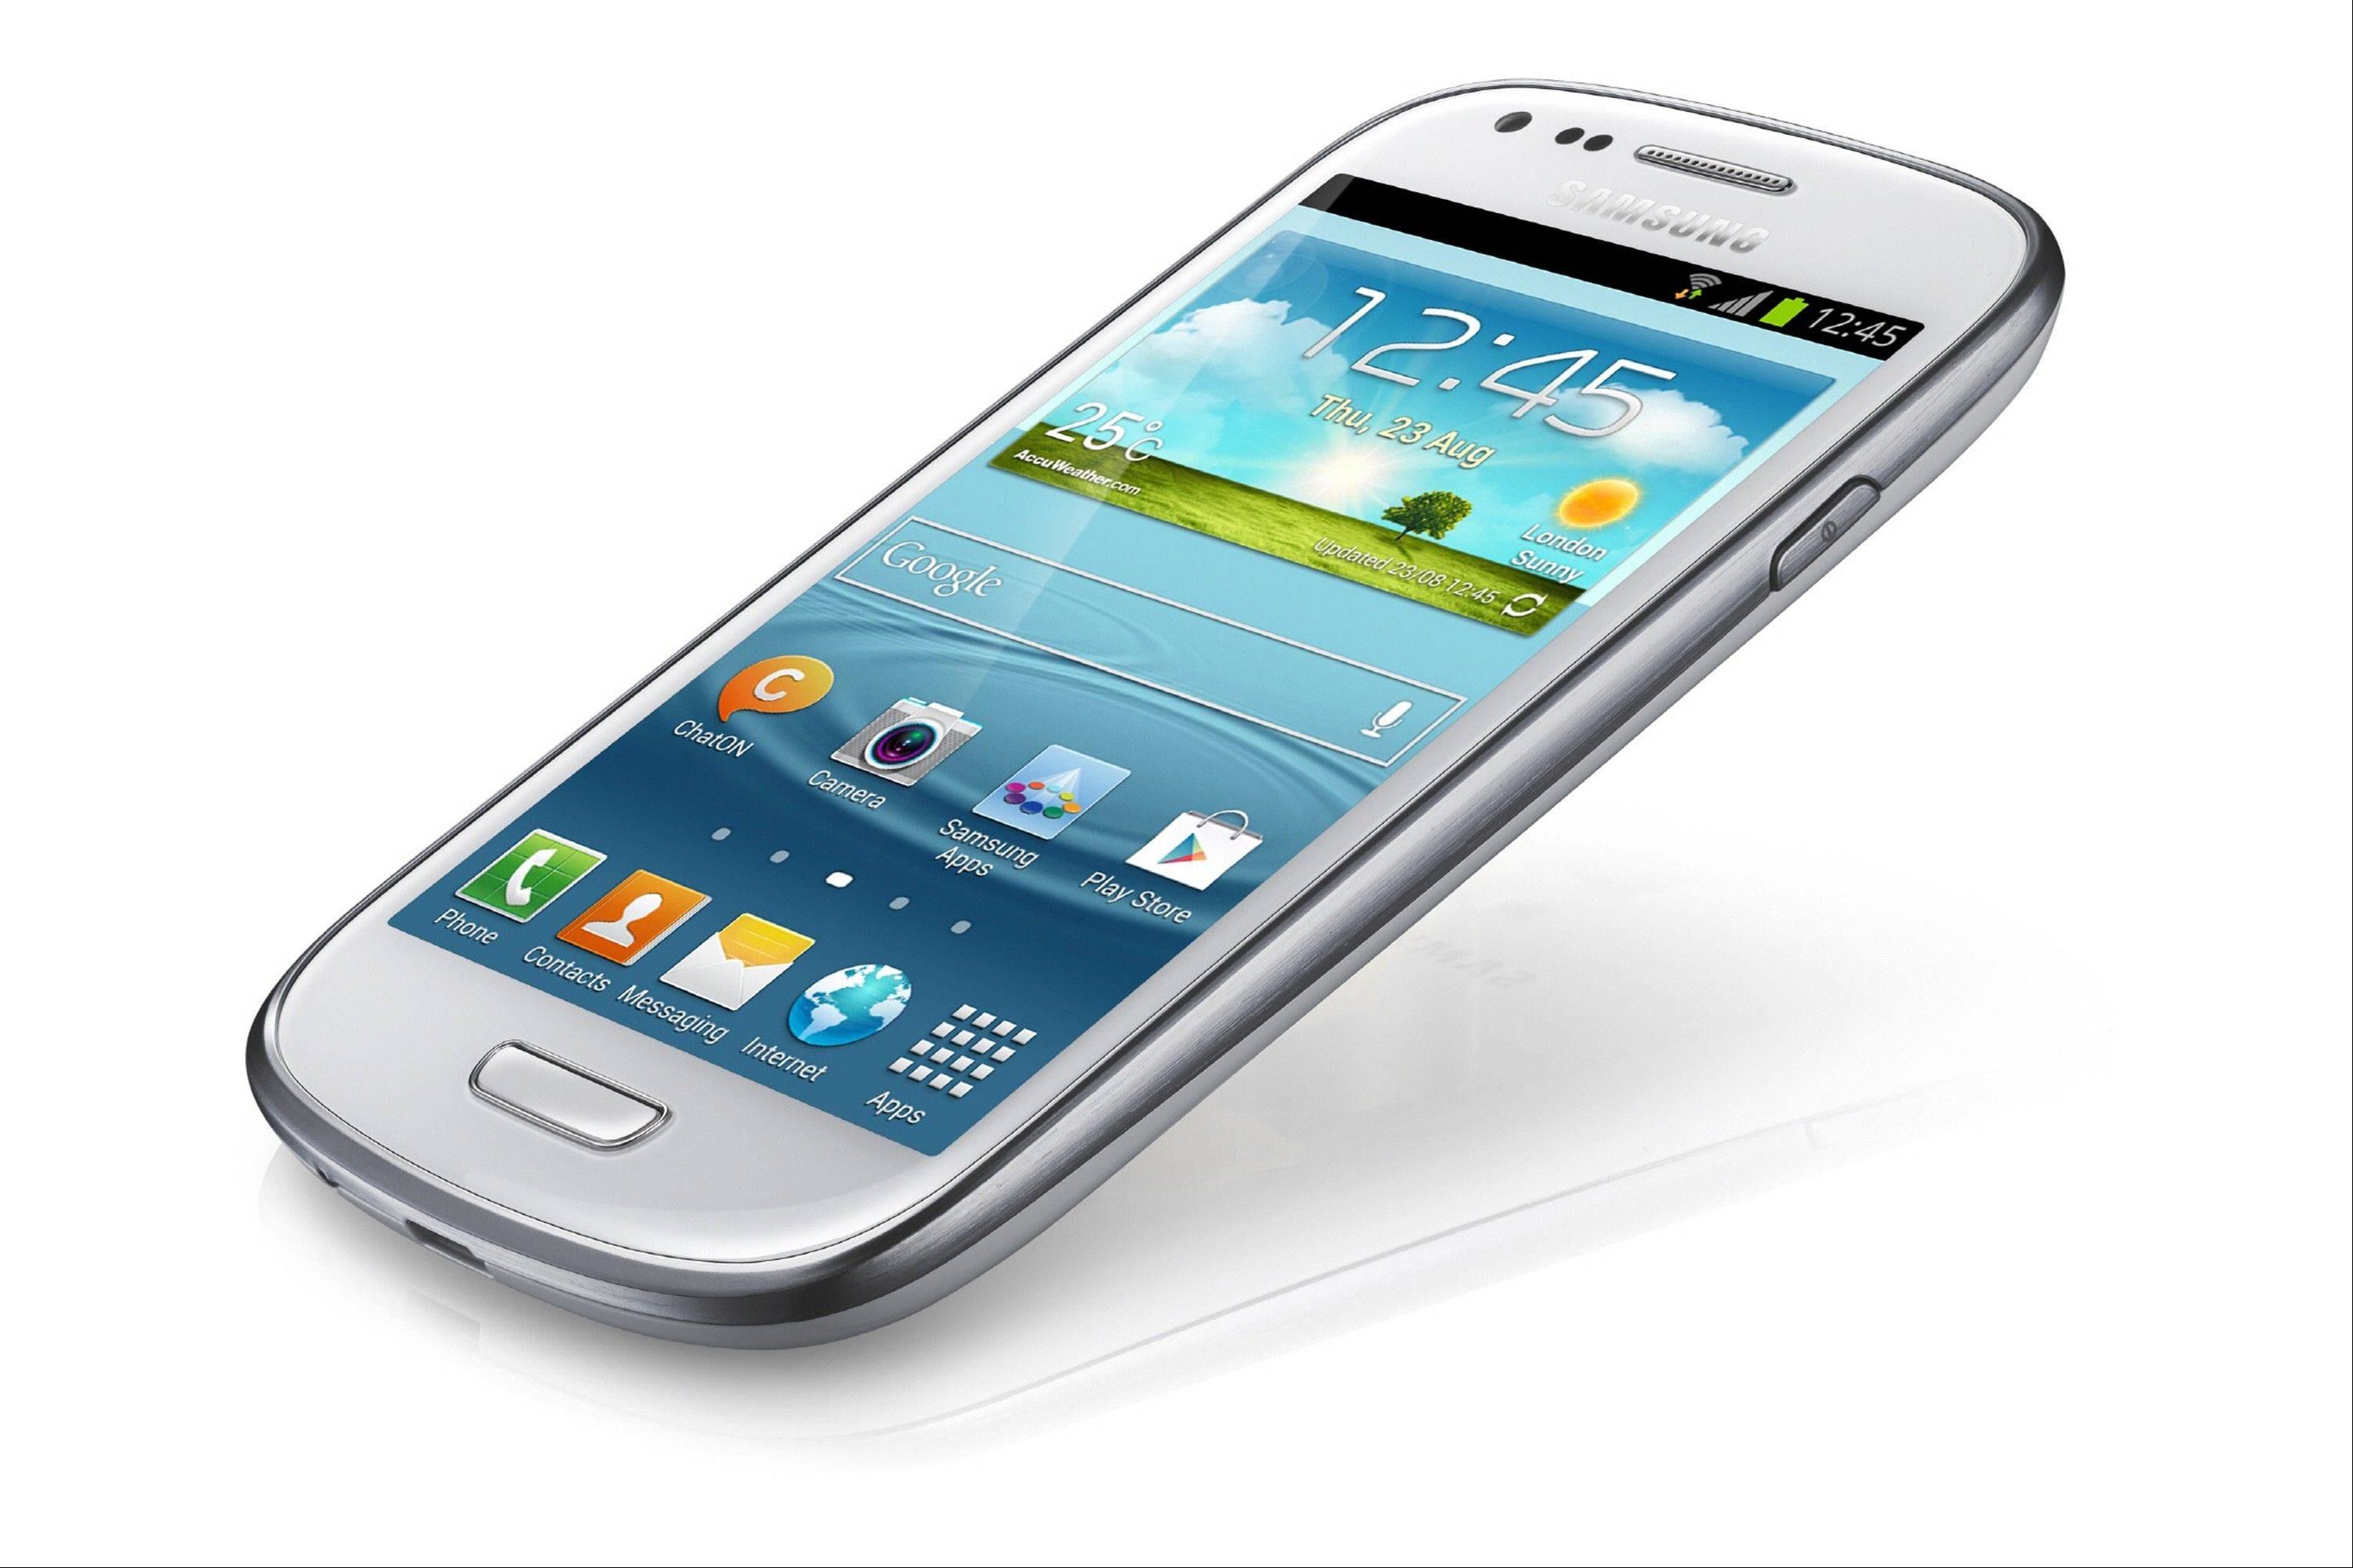 Samsung's Galaxy S III mini. South Korean technology giant Samsung says the Galaxy S III mini features a screen measuring 4 inches diagonally, smaller than the Galaxy S III's 4.8 inch display but the same as Apple's iPhone 5, which was Apple's first upgrade of the iPhone screen size.